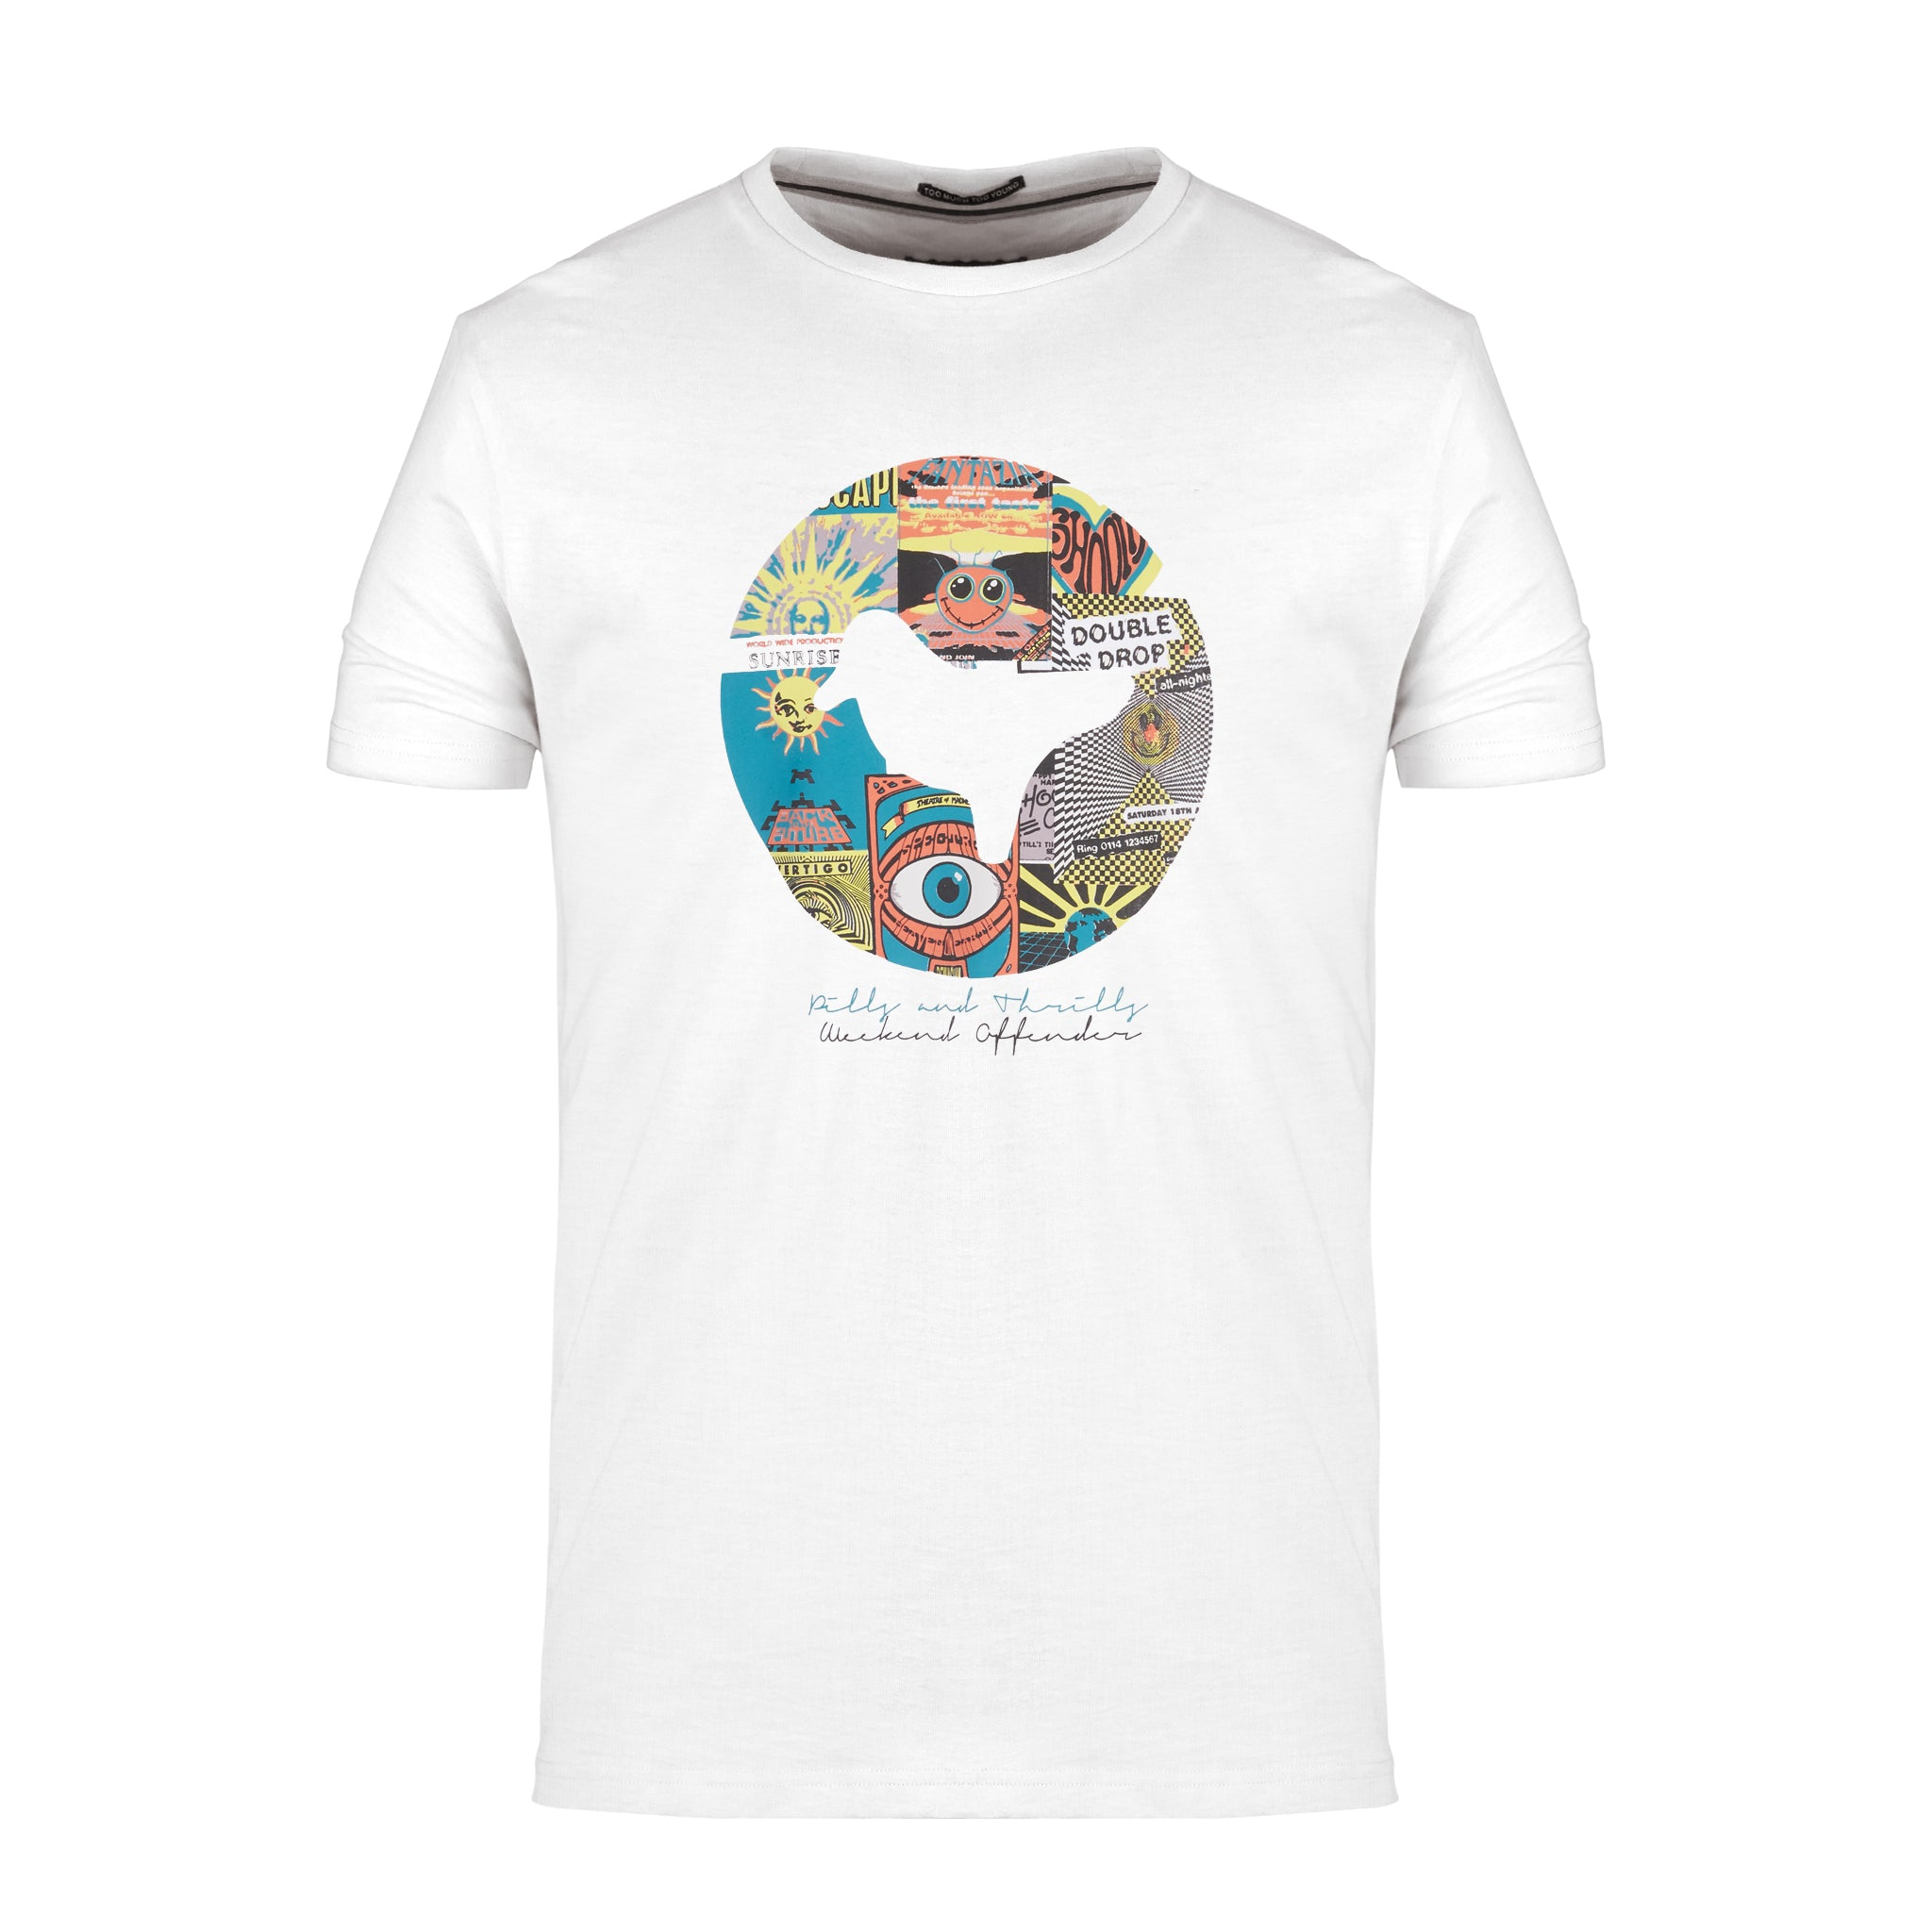 af86288ce Pills And Thrills Tee White – Weekend Offender